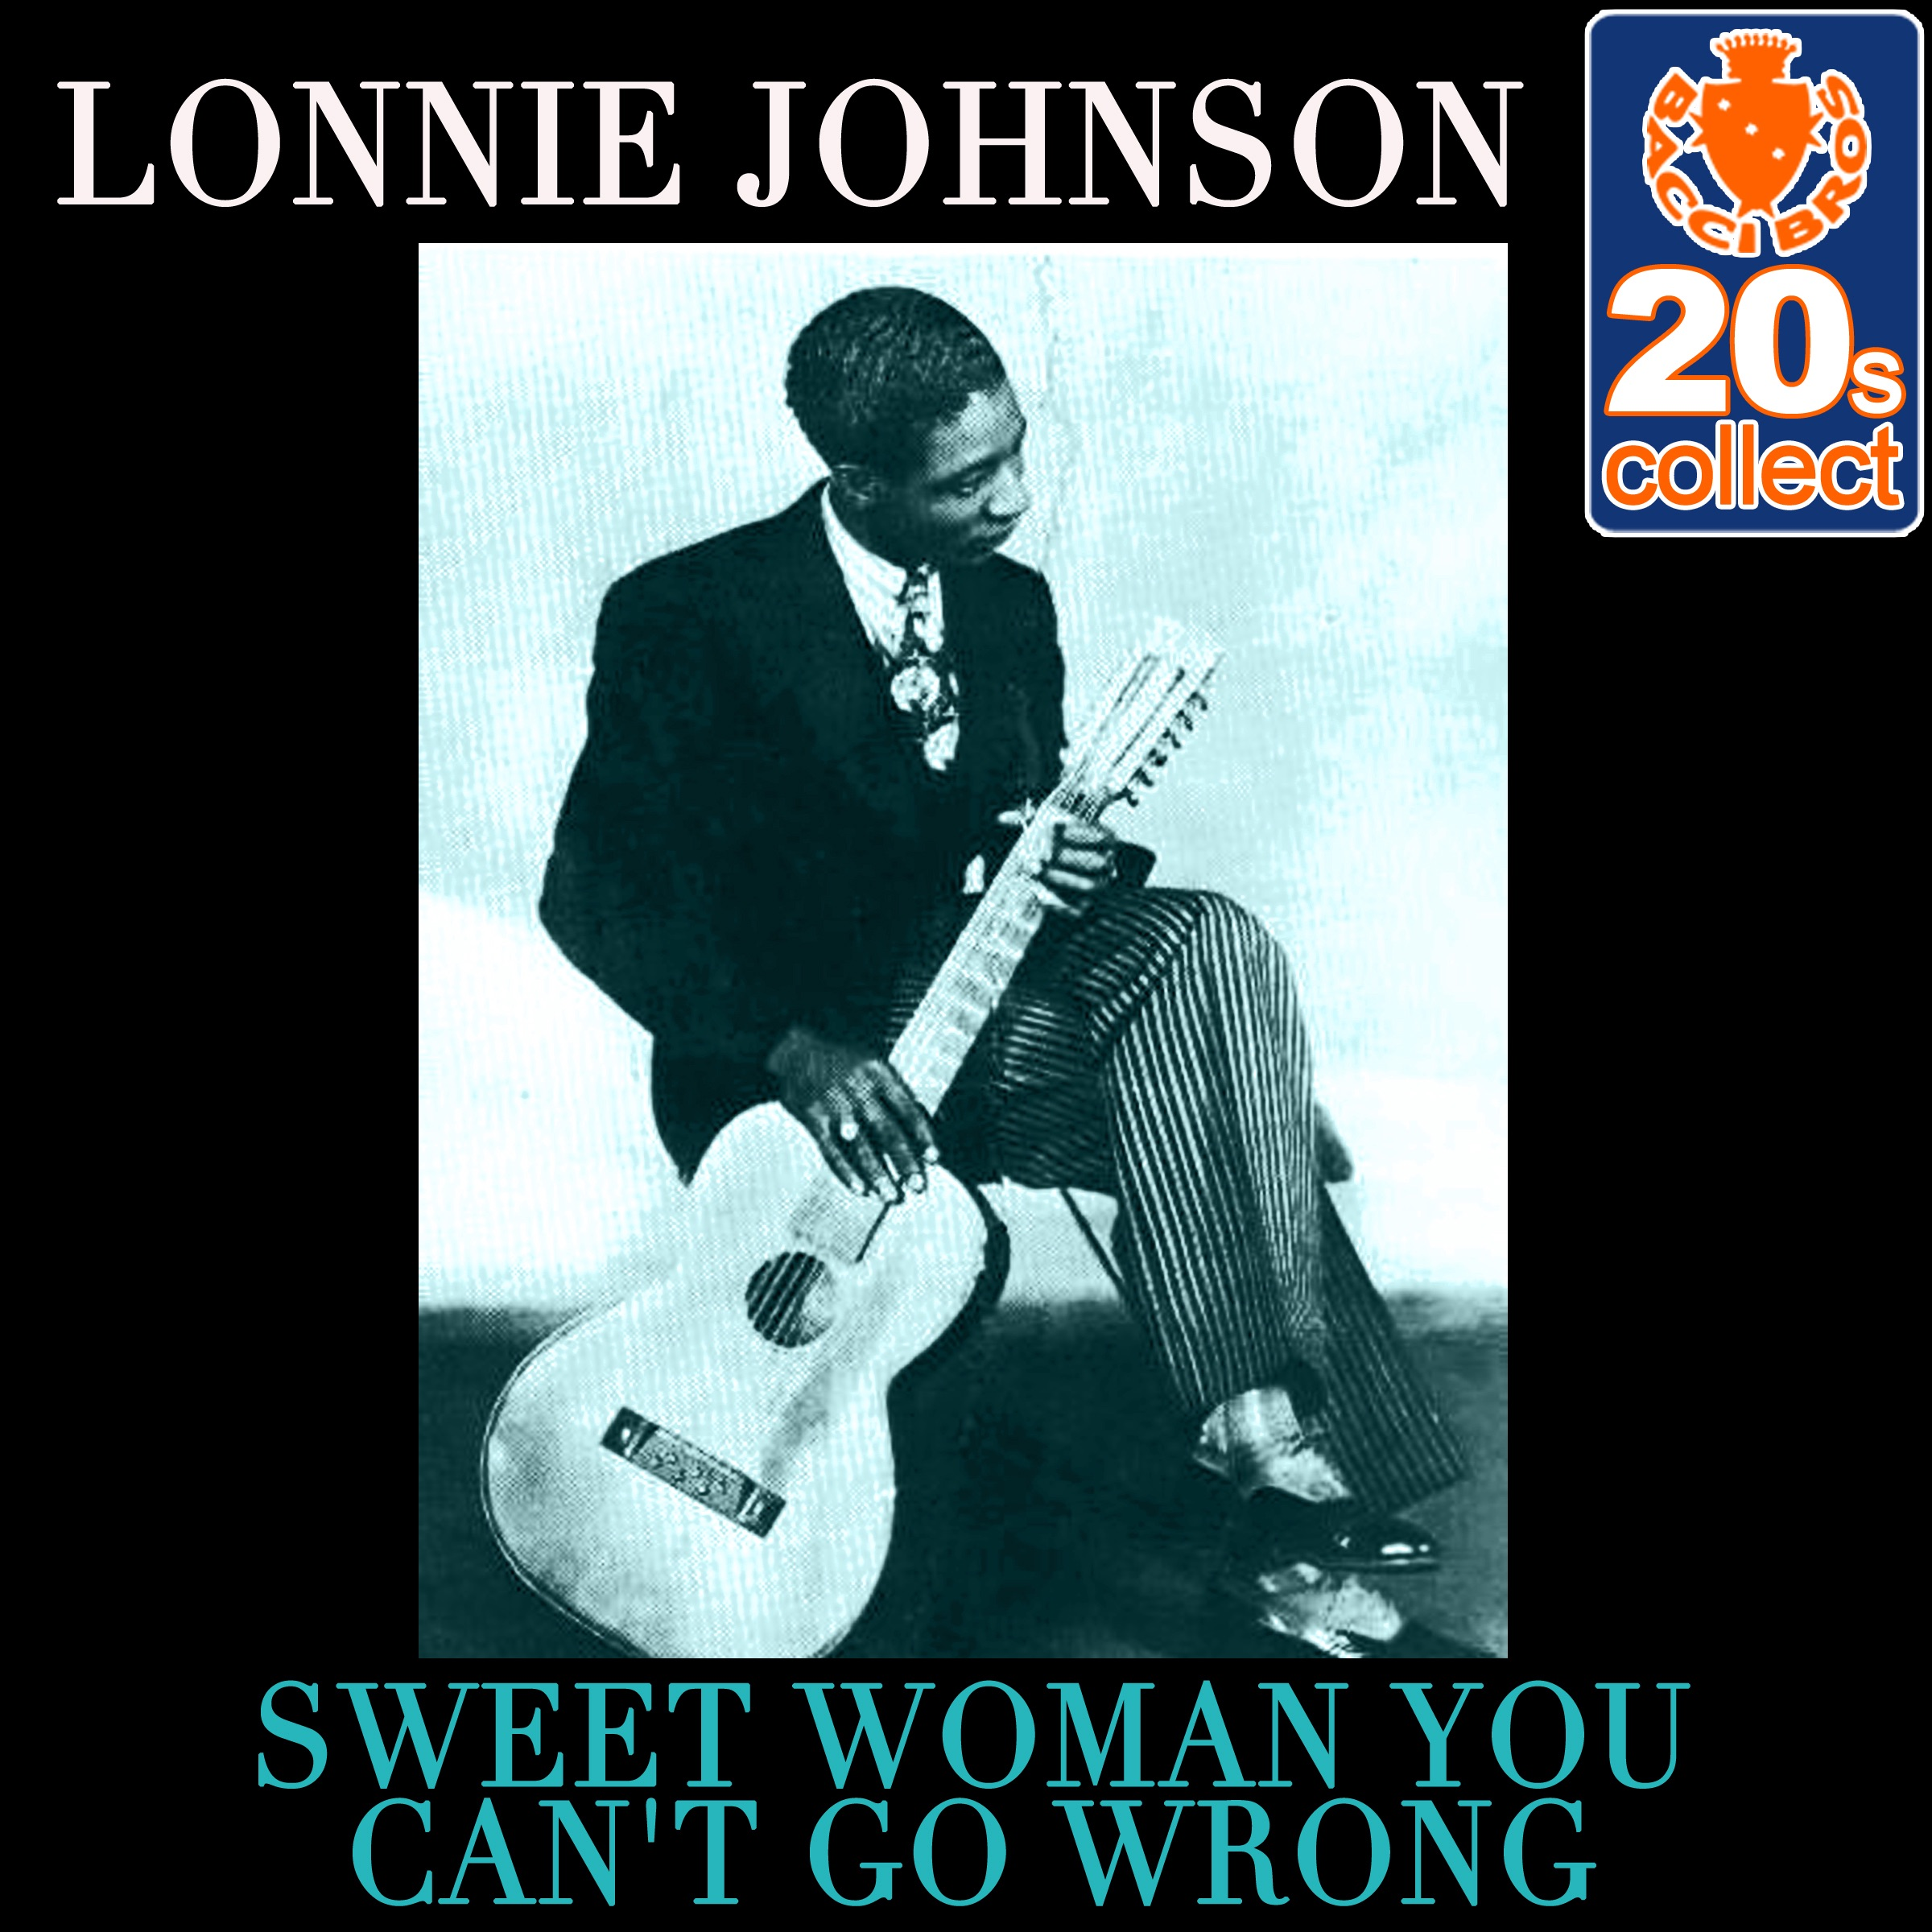 Sweet Woman You Can't Go Wrong (Remastered) - Single